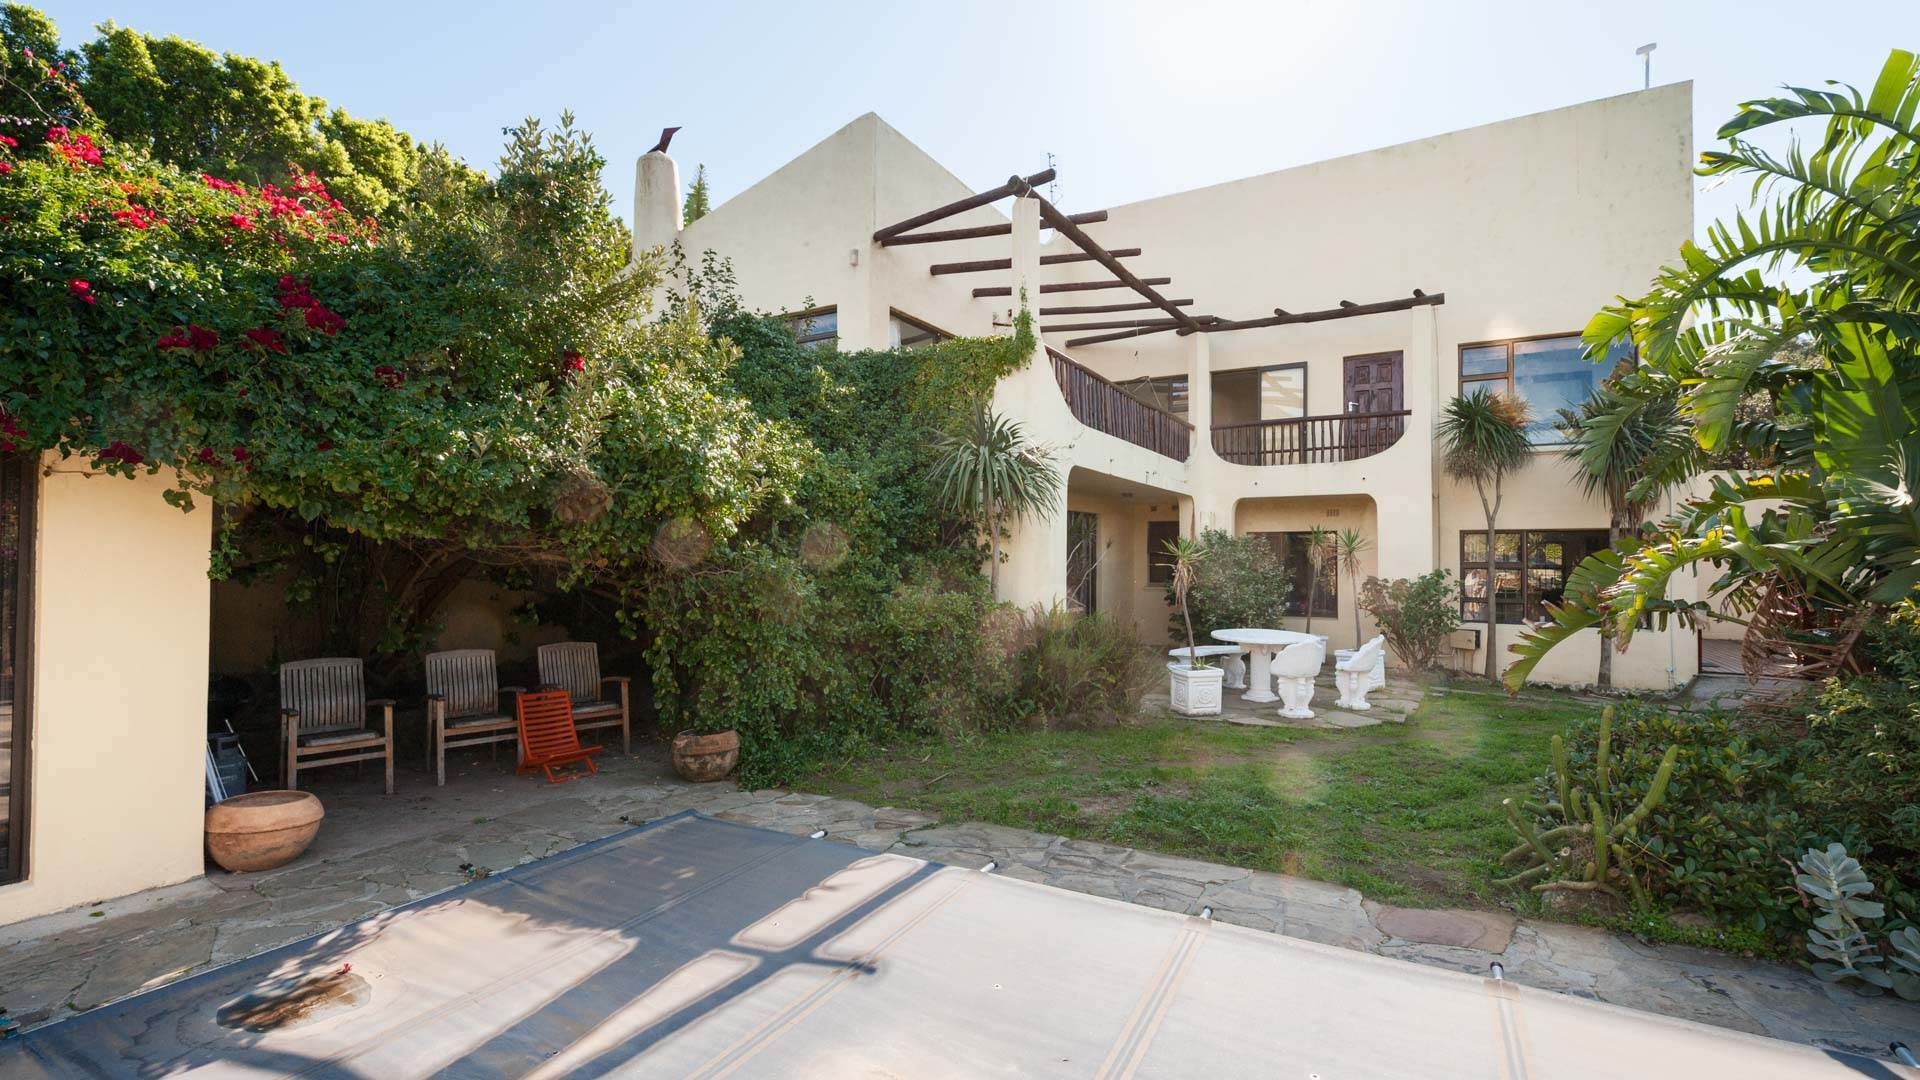 4 BedroomHouse For Sale In Valley Area